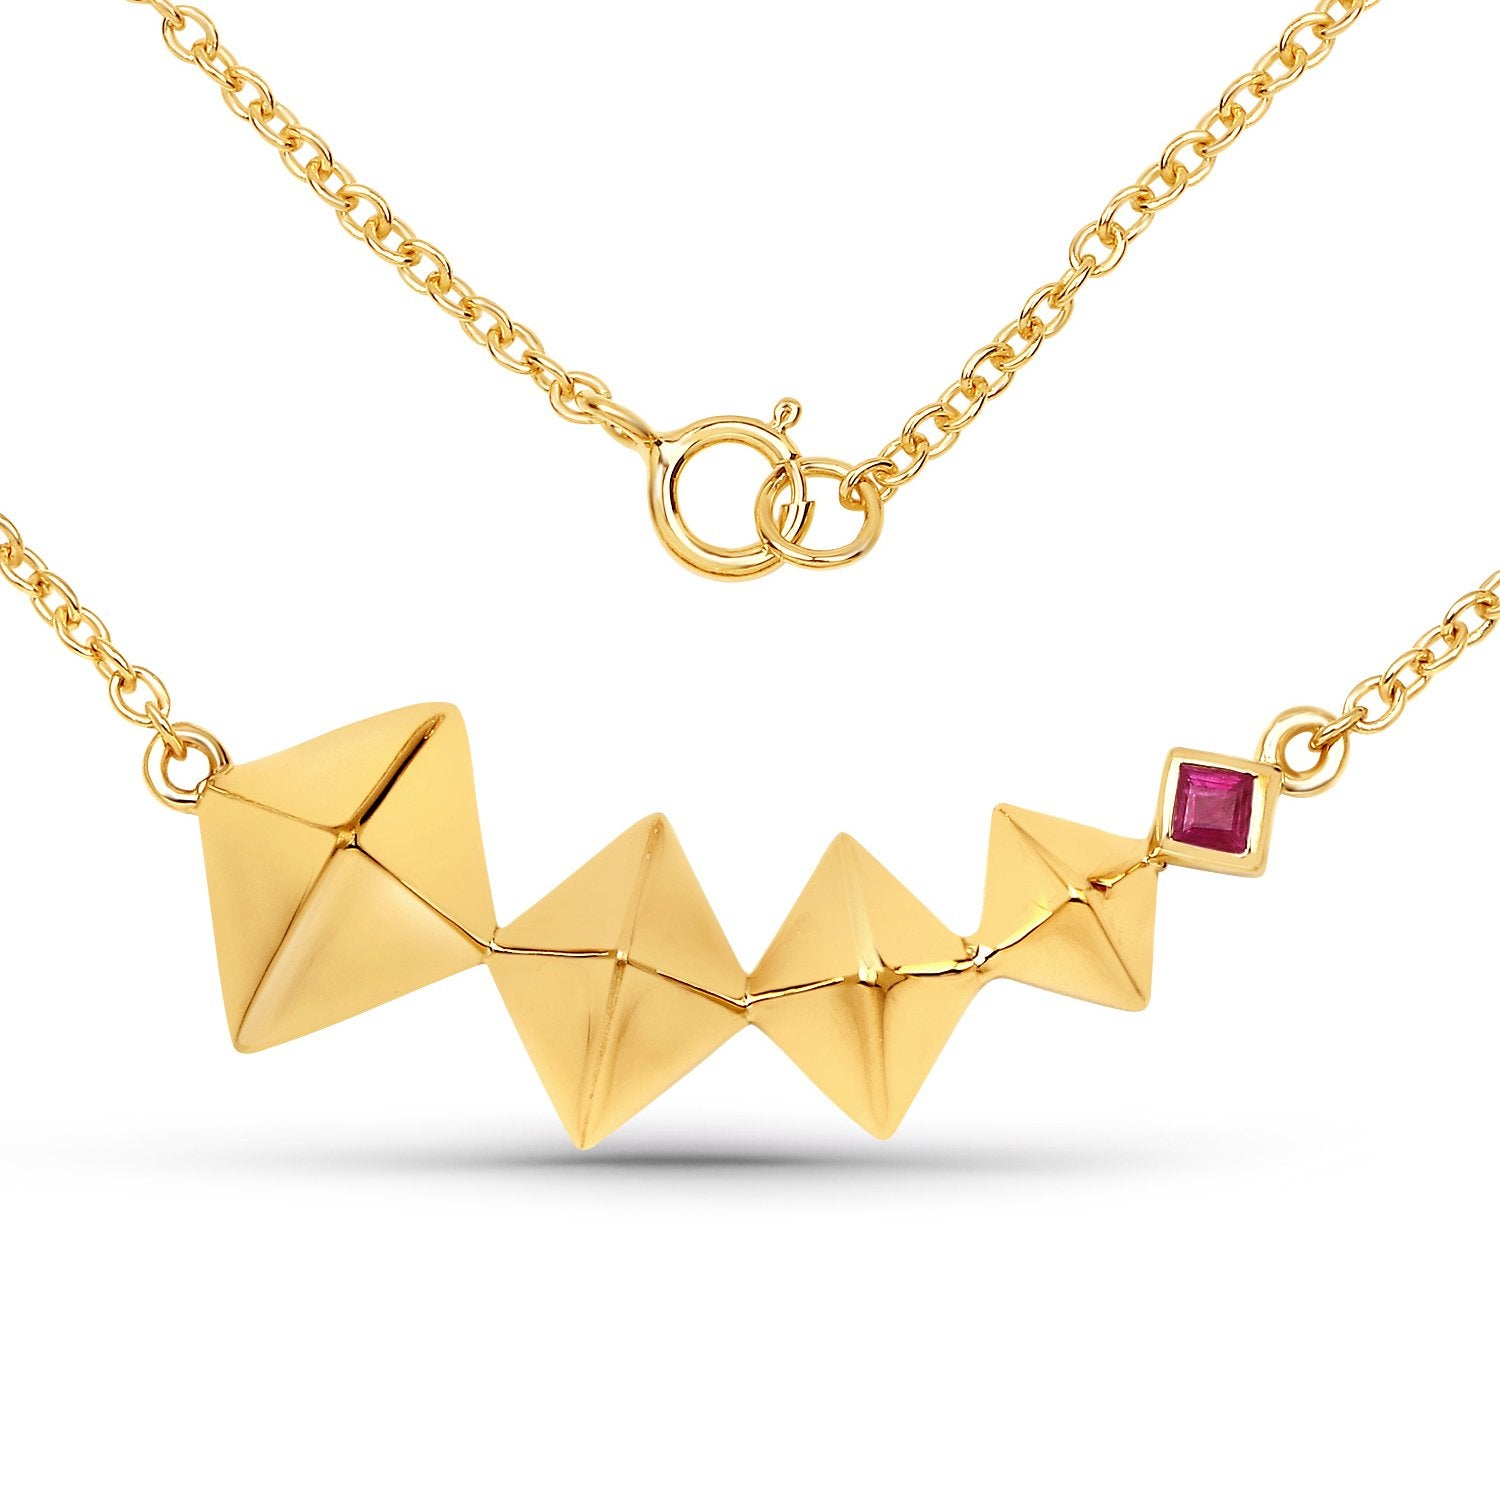 LoveHuang 0.11 Carats Genuine Ruby Necklace Solid .925 Sterling Silver With 18KT Yellow Gold Plating, 18Inch Chain